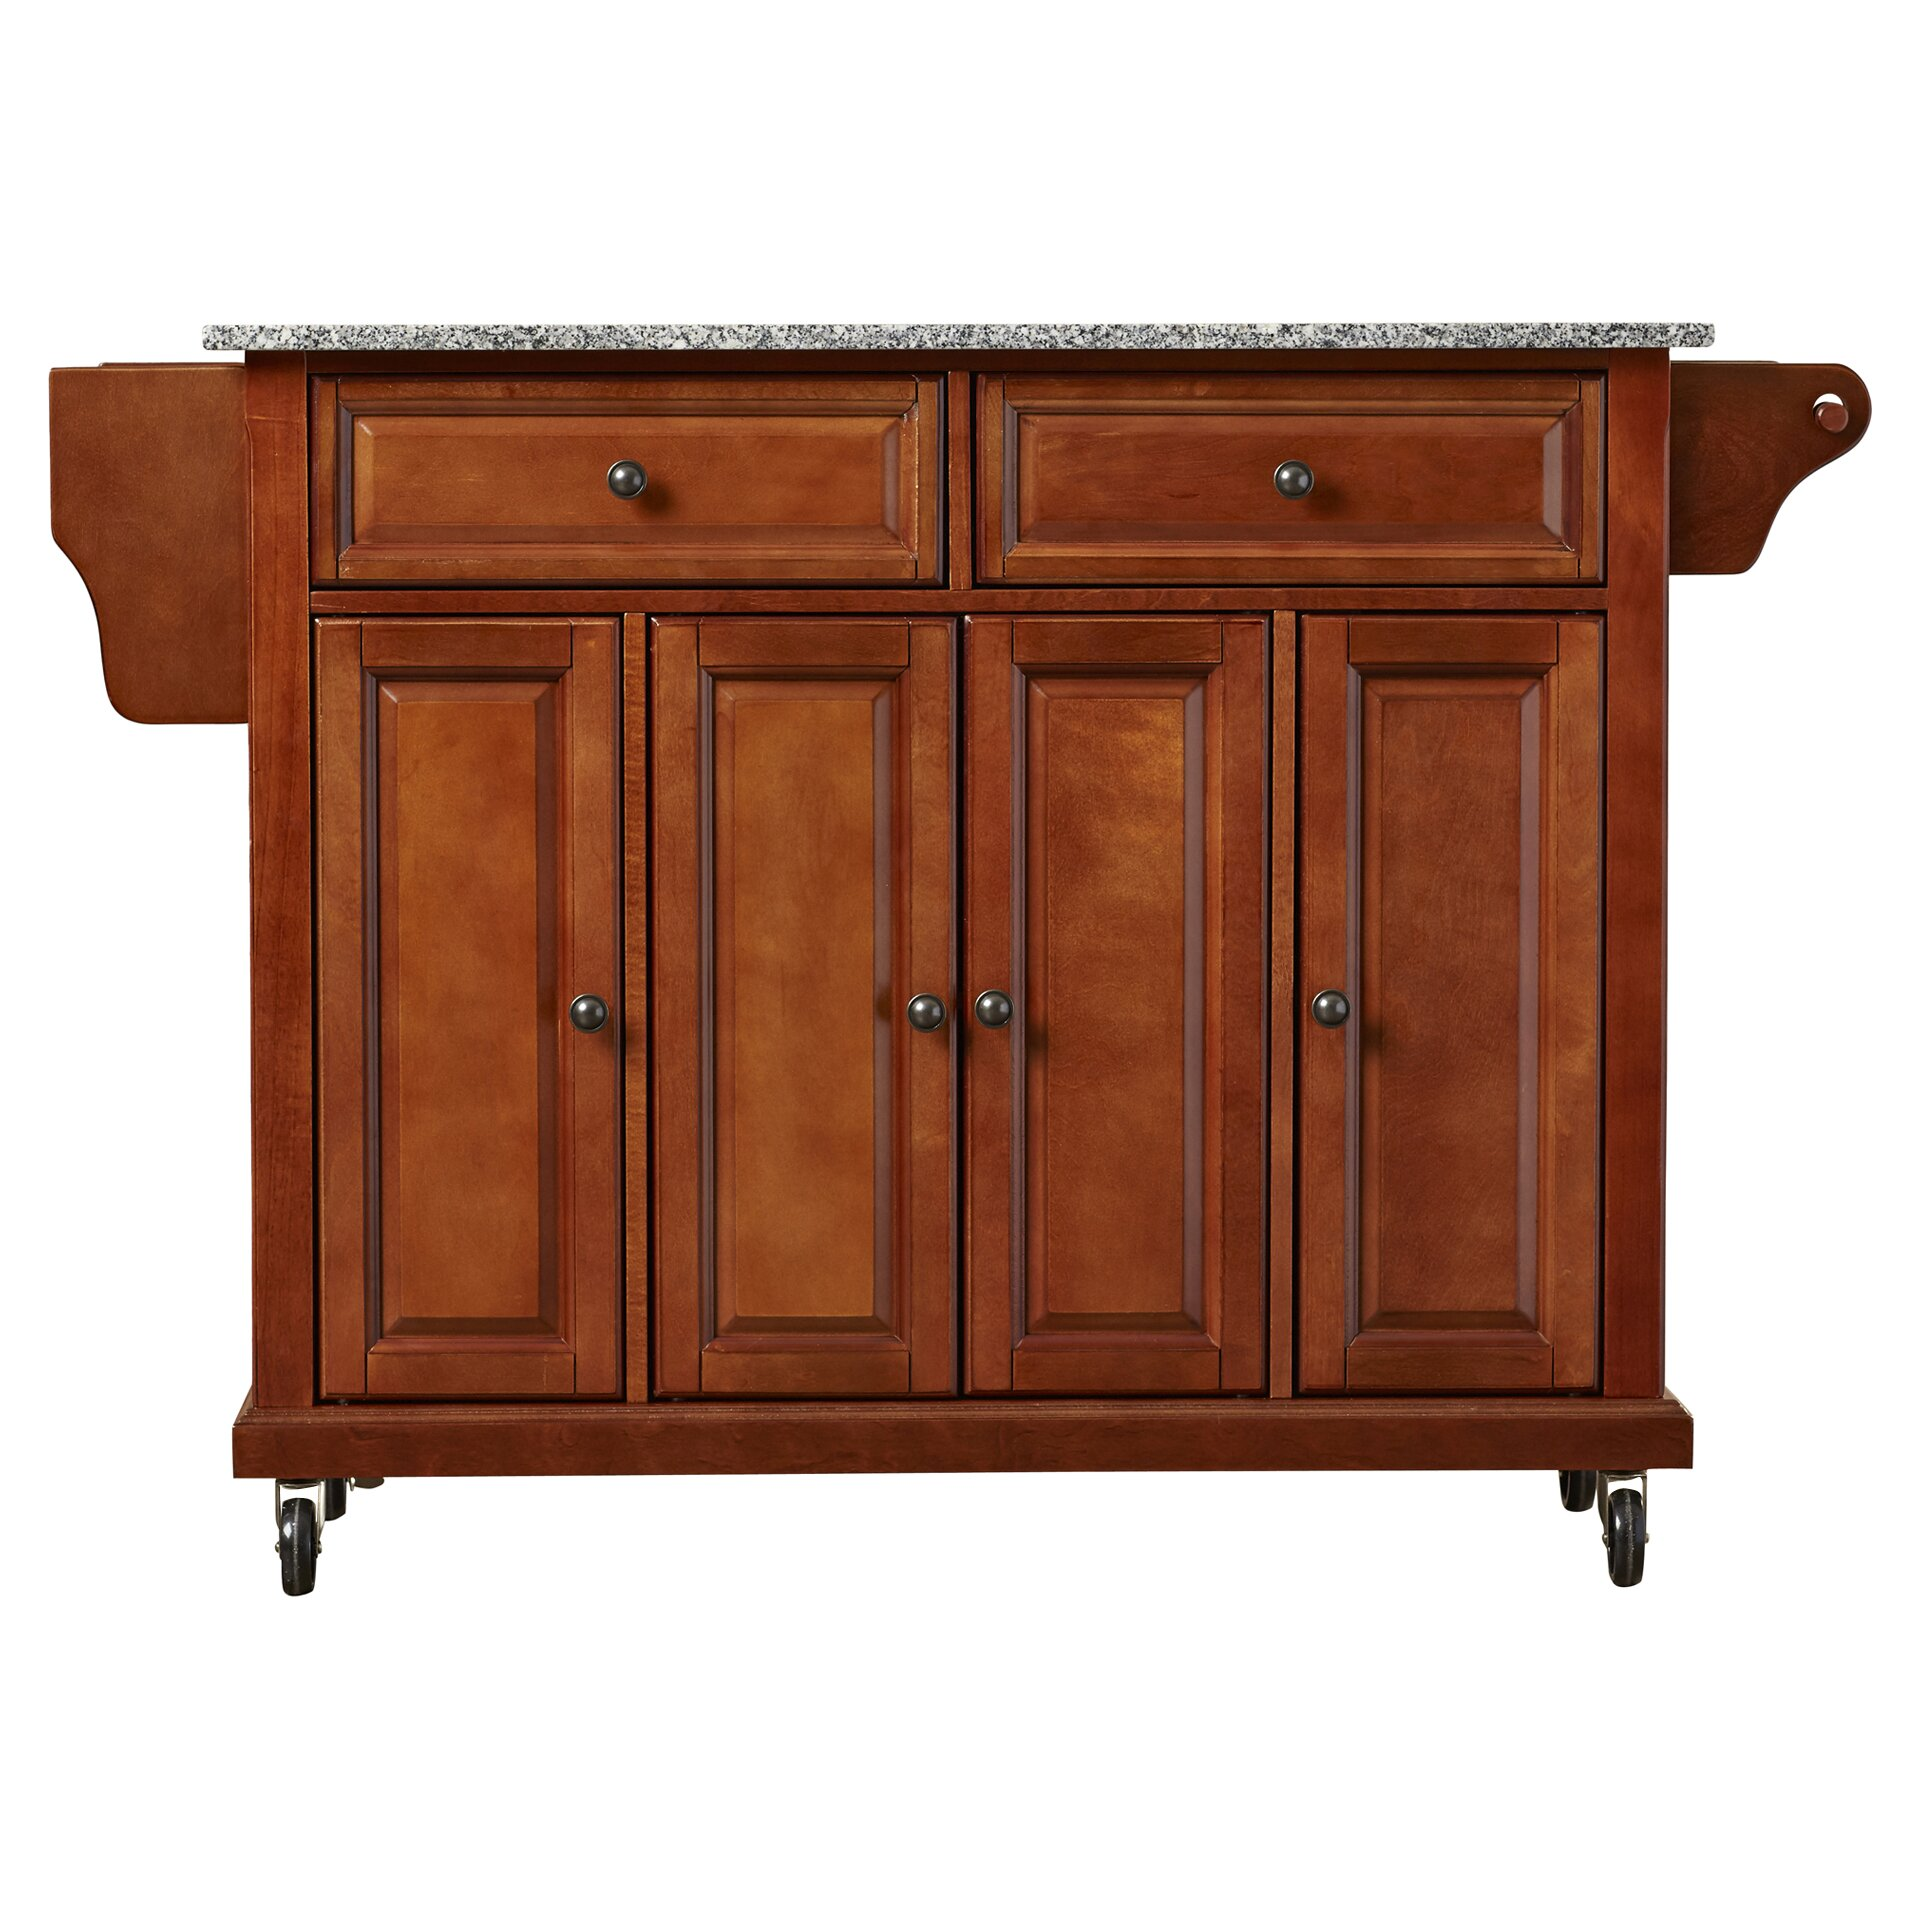 Darby Home Co Pottstown Kitchen Cart Island With Granite Top Reviews